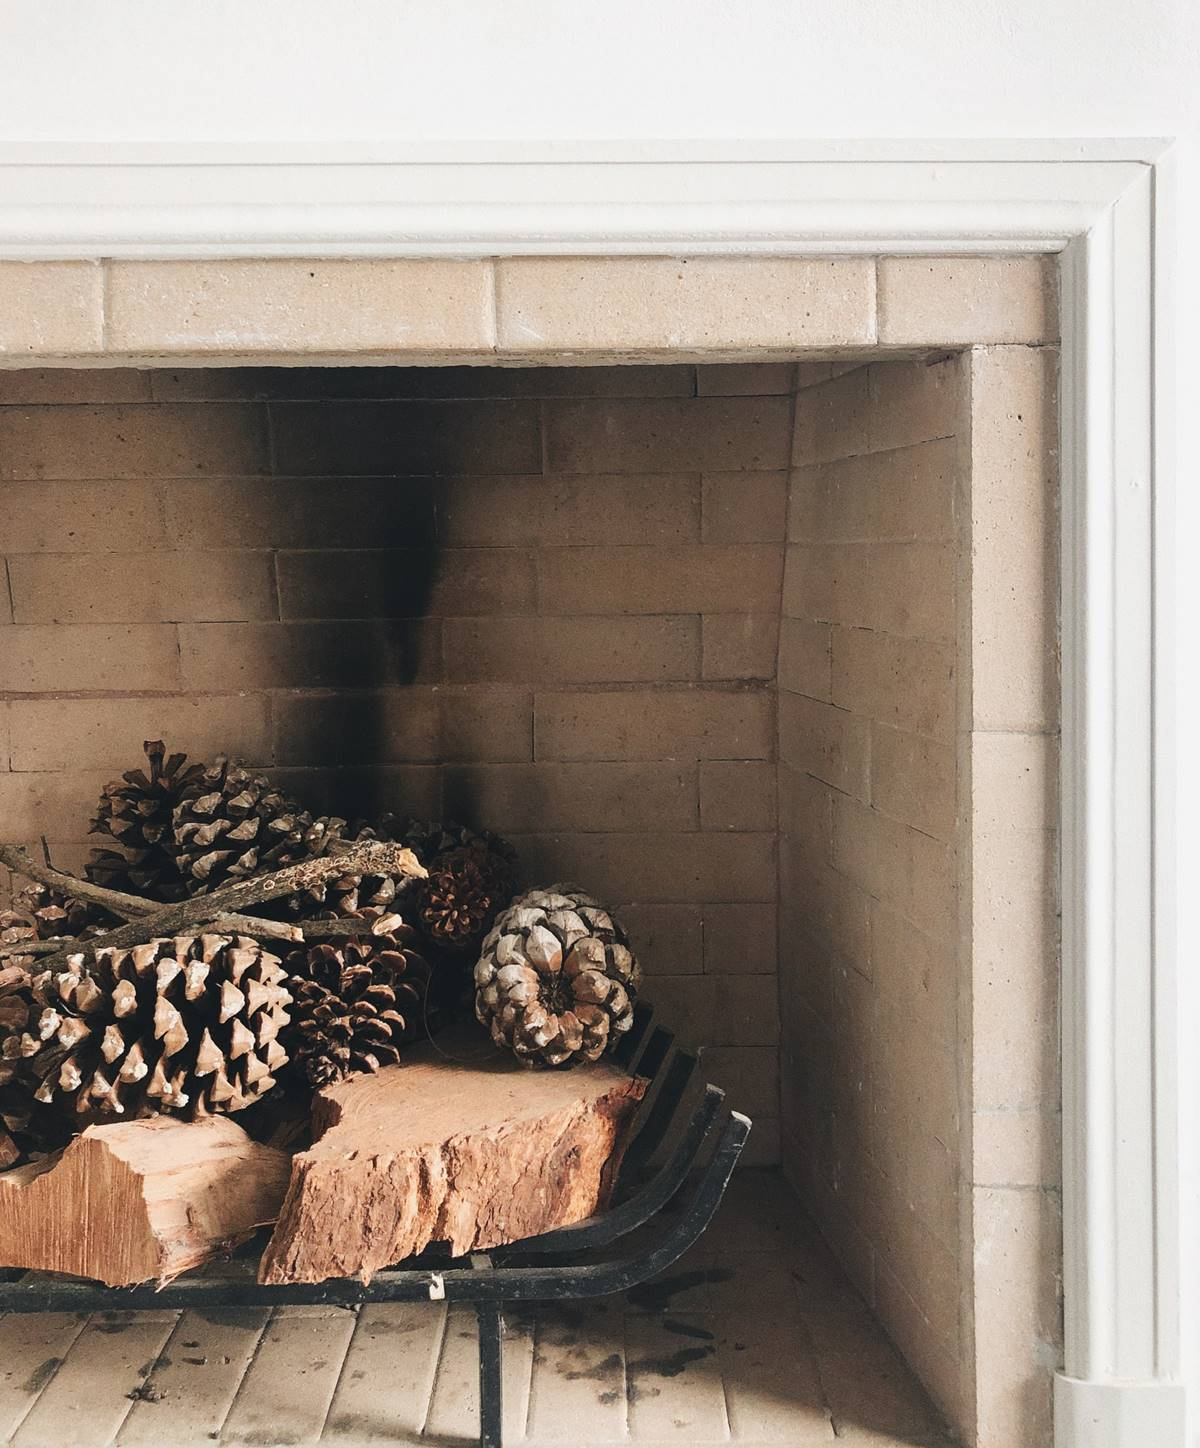 Preparing the fireplace for winter